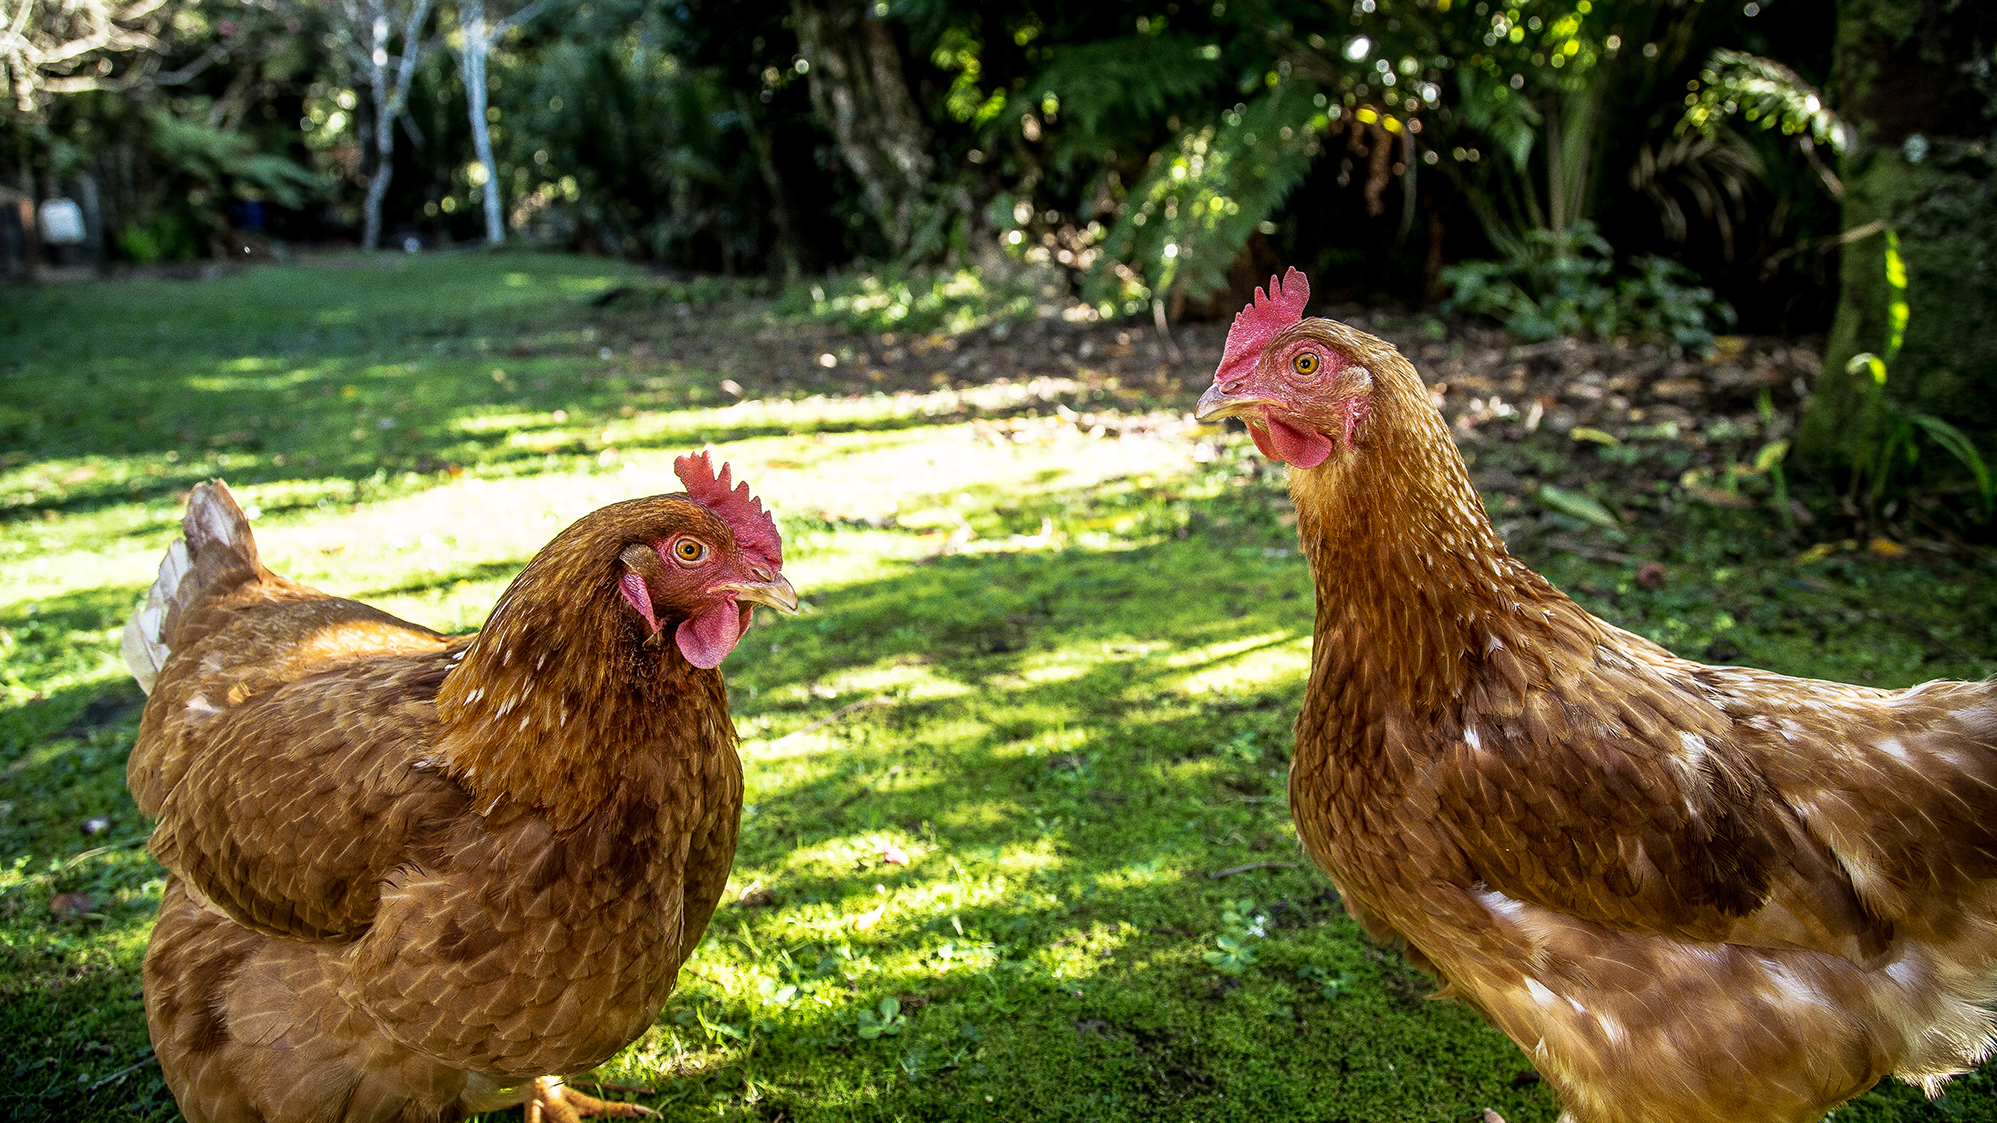 Do Backyard Chickens Need More Rules? | KQED